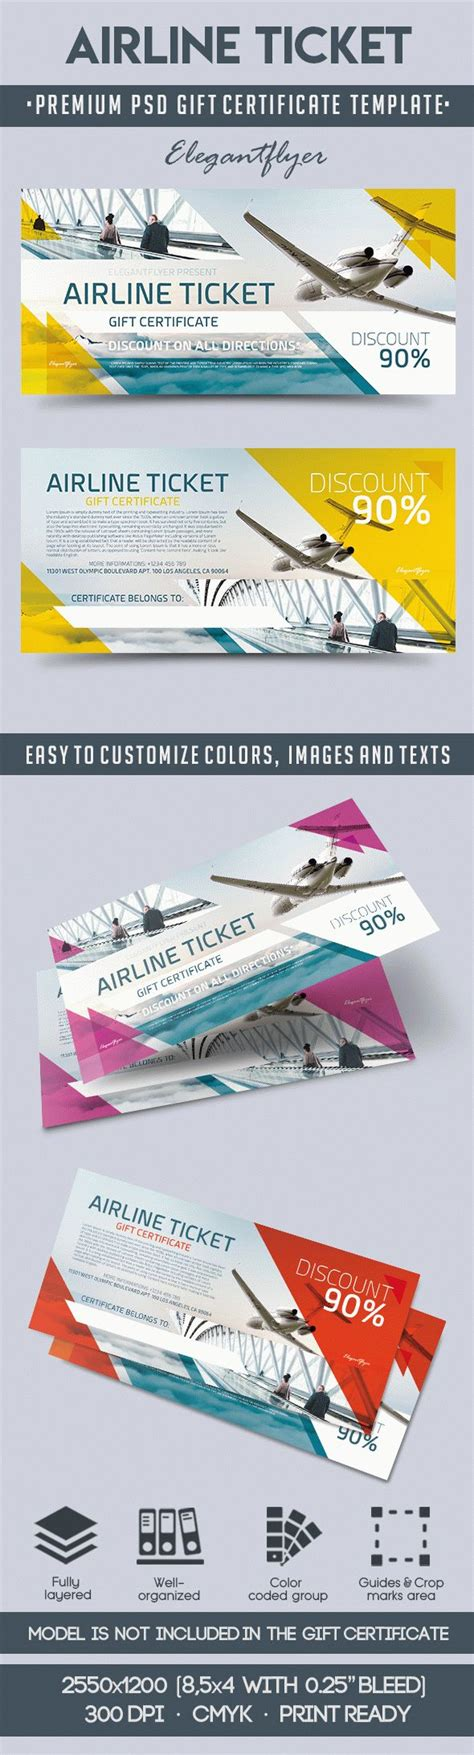 flight ticket template gift gift certificate template airline ticket choice image